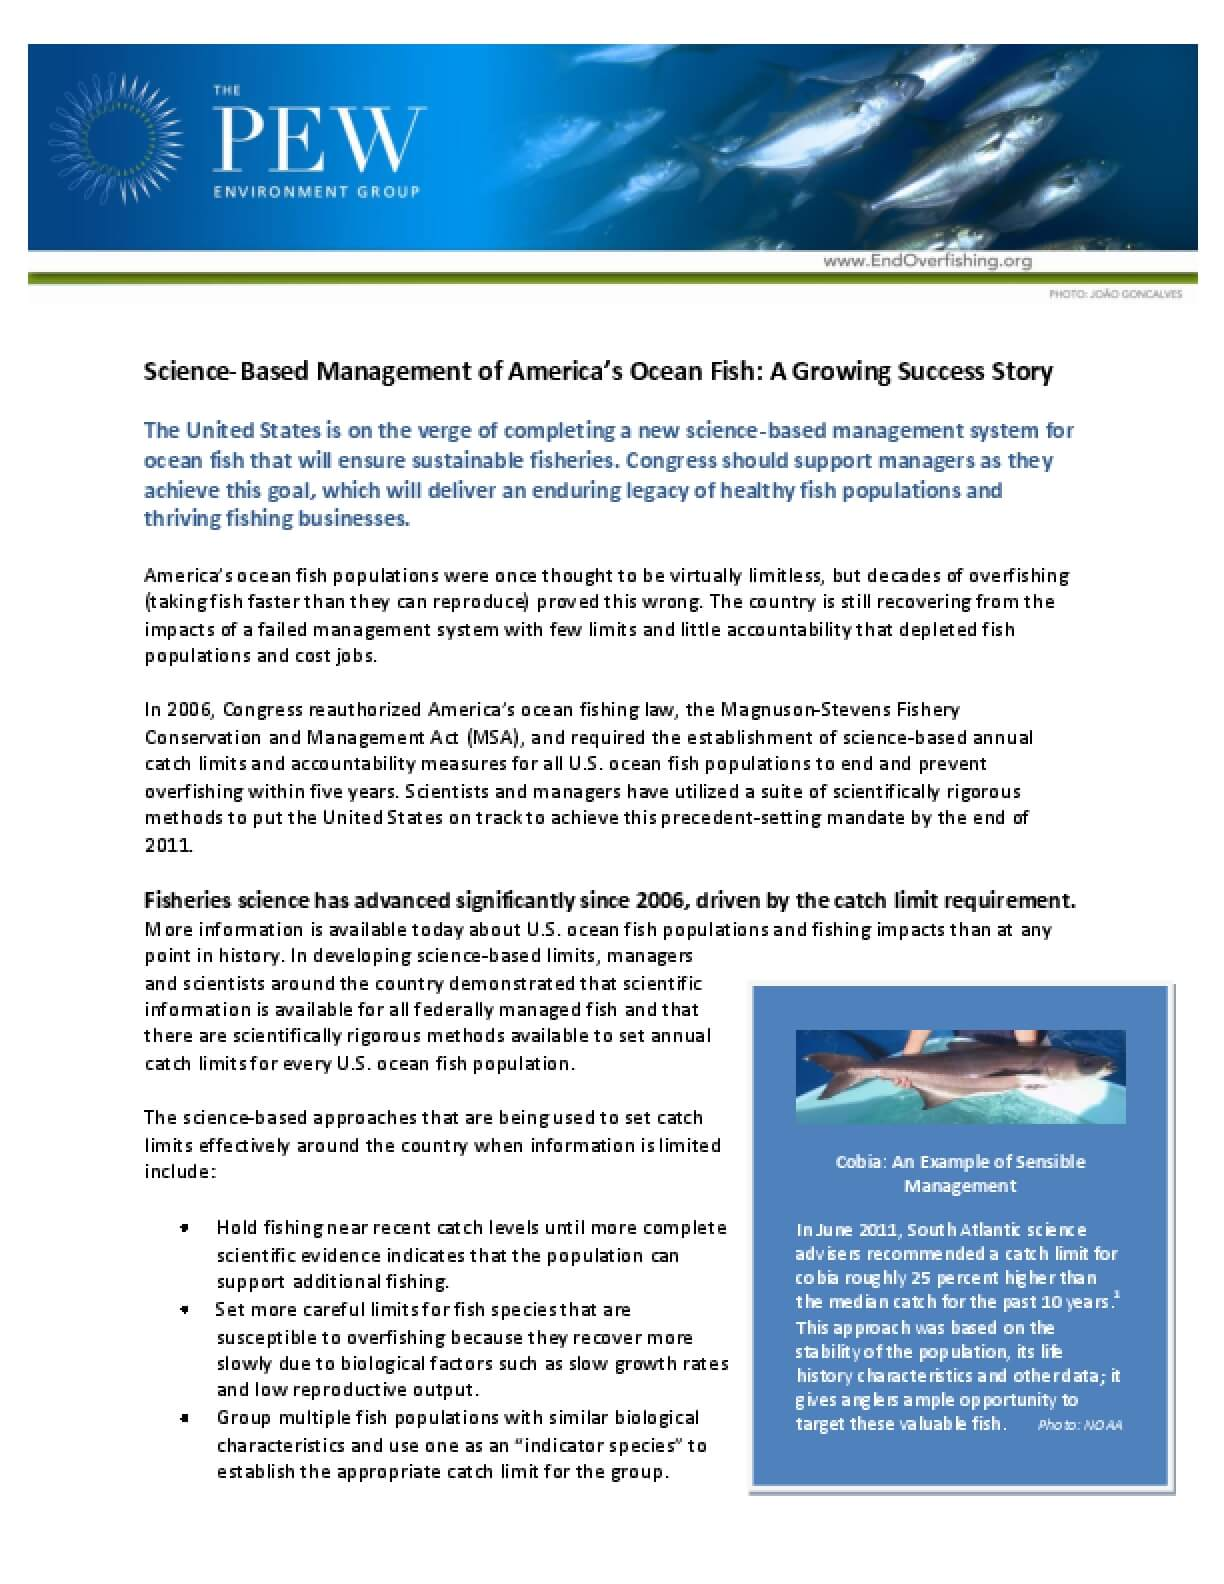 Science-Based Management of America's Ocean Fish: A Growing Success Story